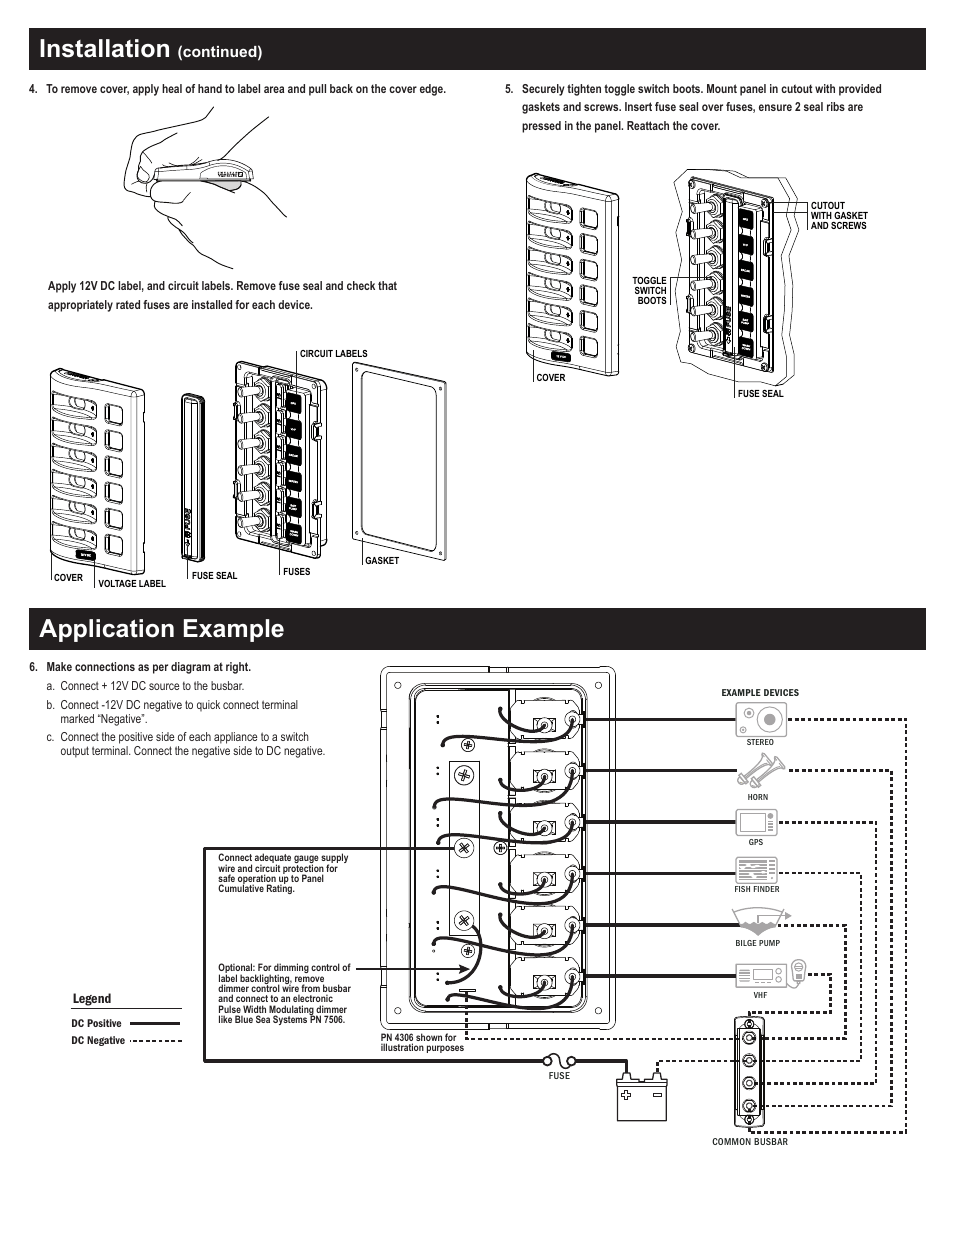 Water Proof Labels For Fuse Box : 31 Wiring Diagram Images